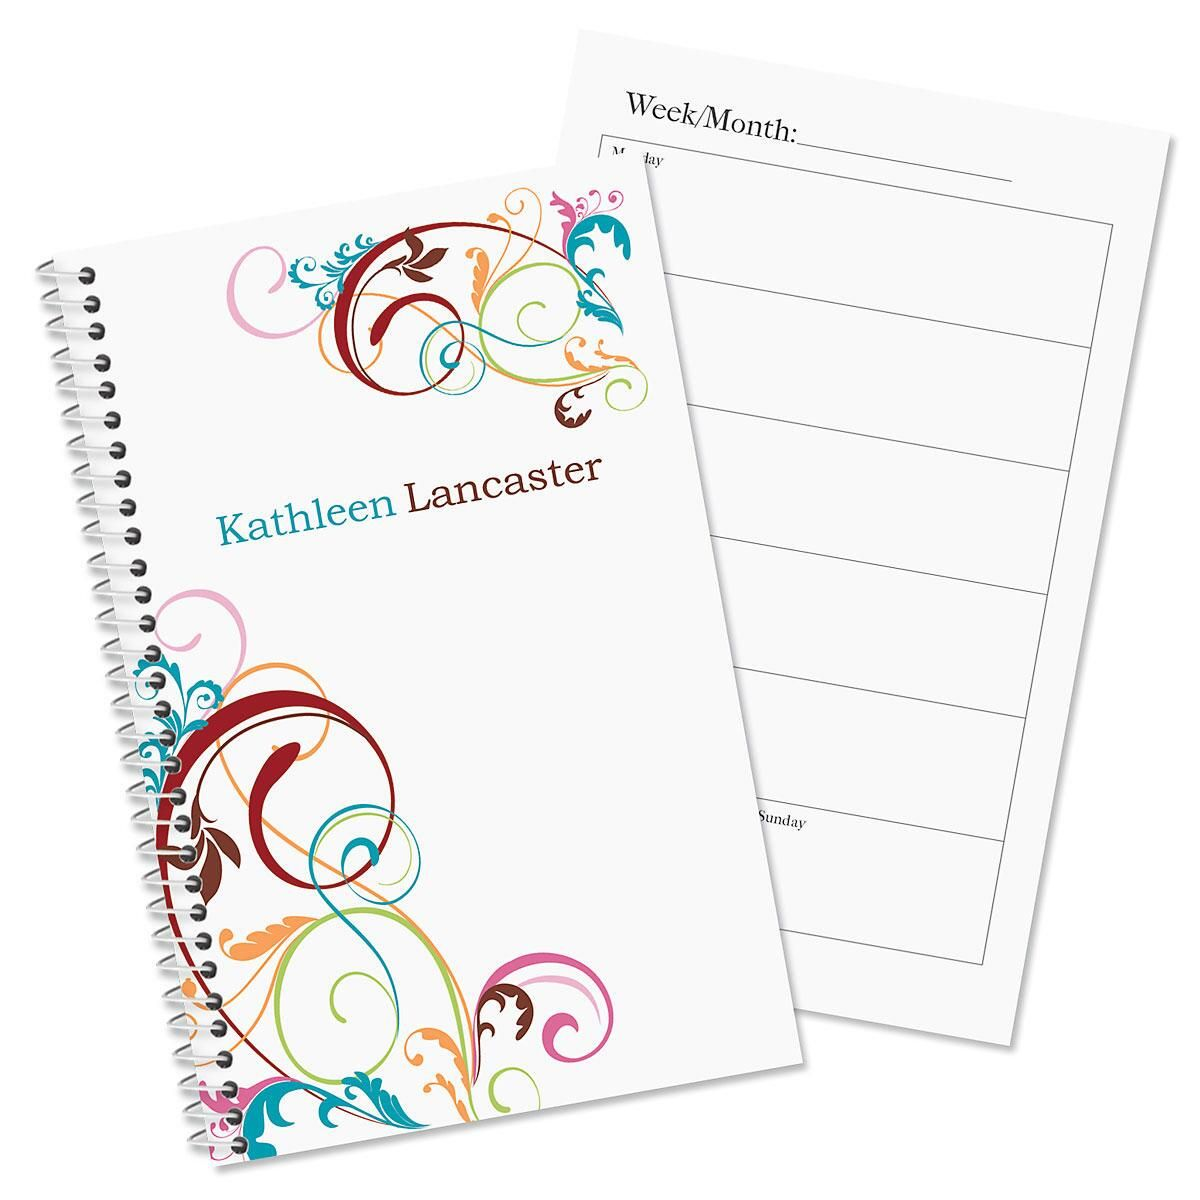 Fantasia Personalized Weekly Planner | Current Catalog